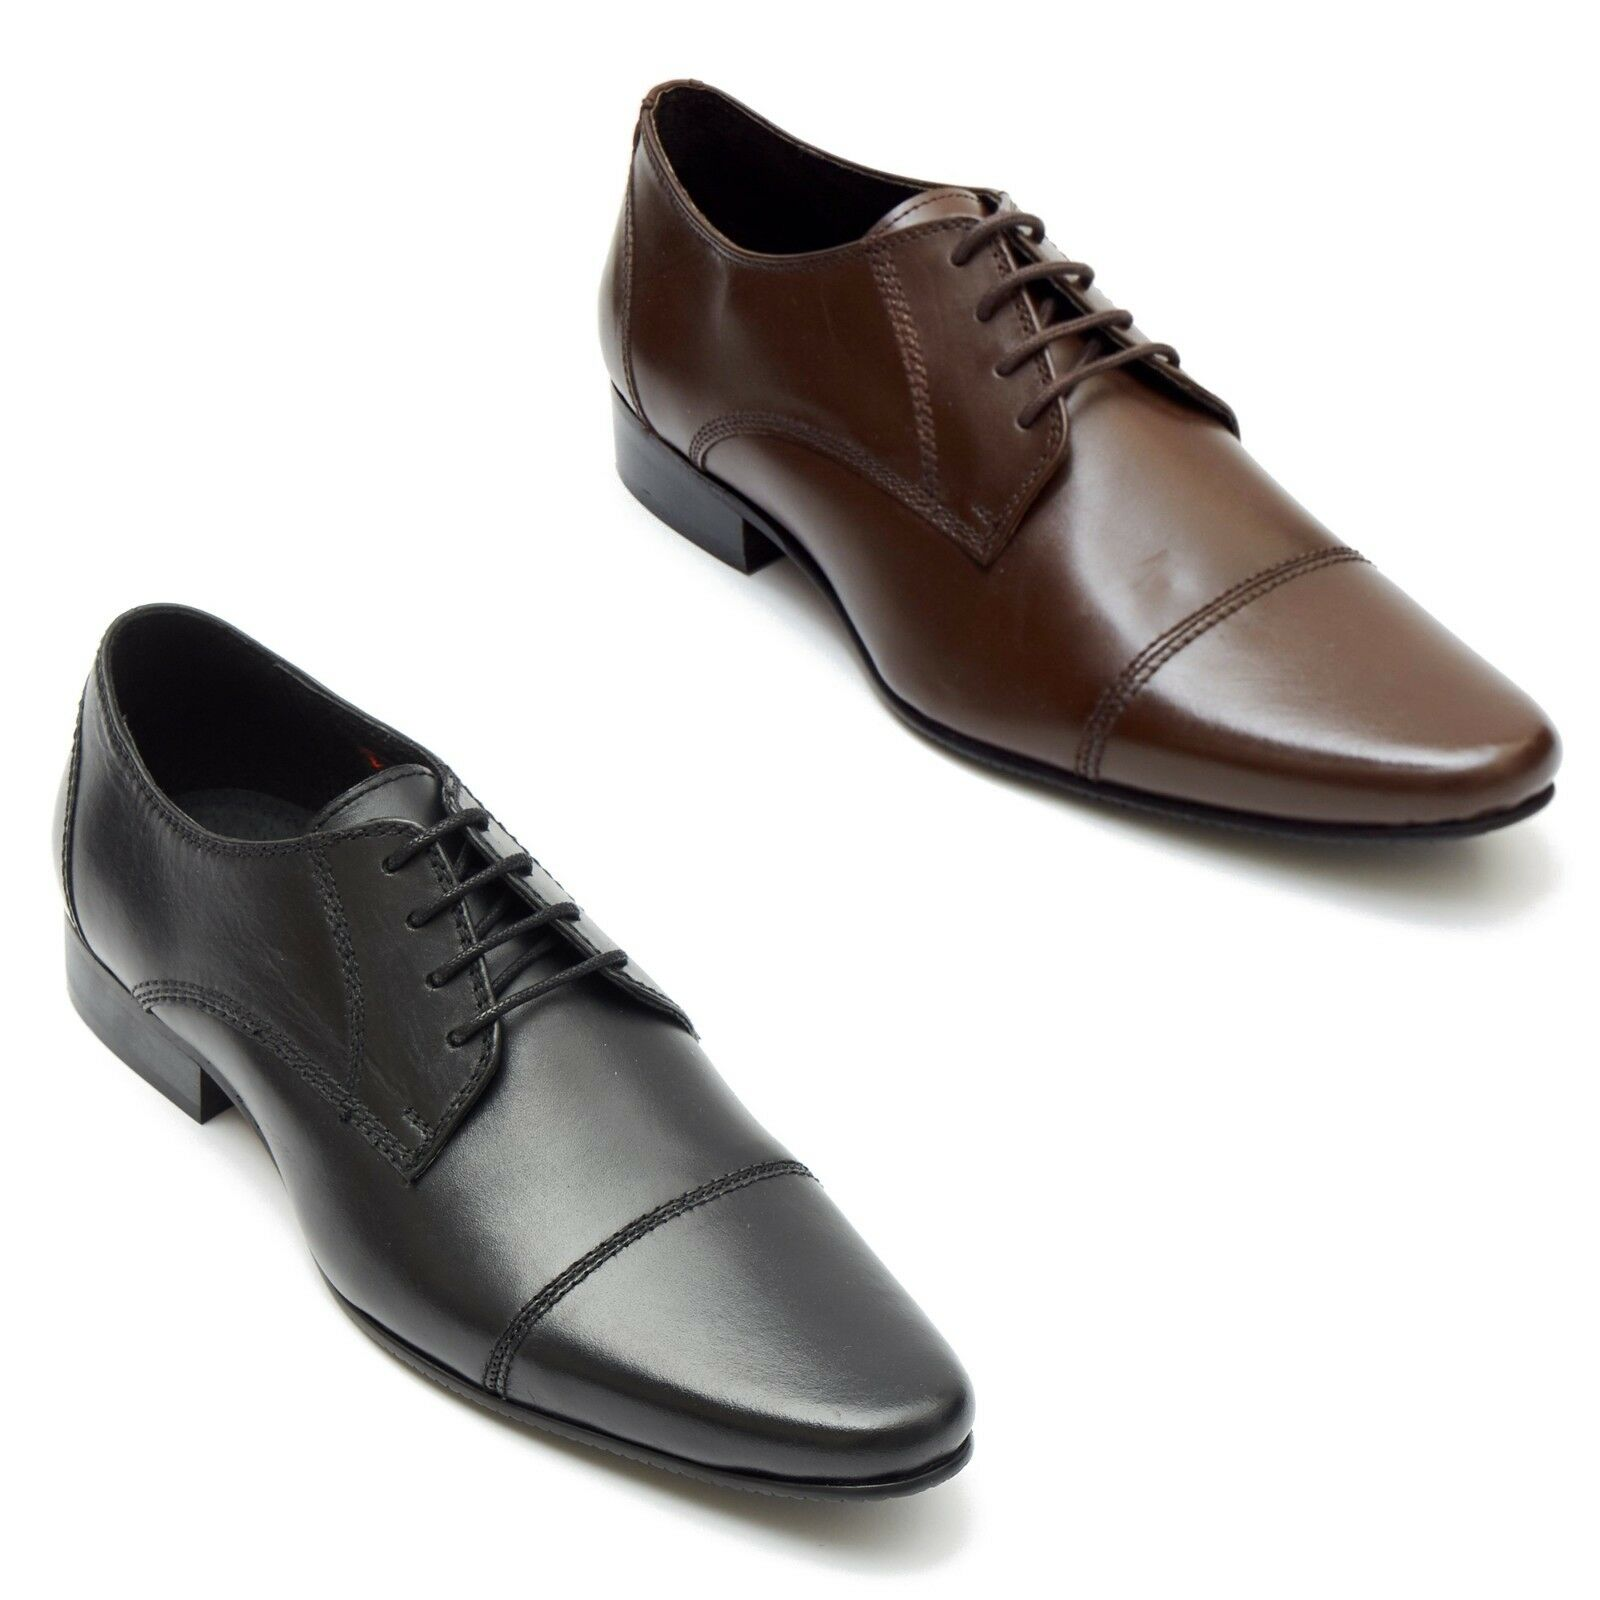 NEW MENS REAL LEATHER OFFICE ITALIAN CASUAL FORMAL OXFORD OFFICE LEATHER WEDDING SHOES 763a8b